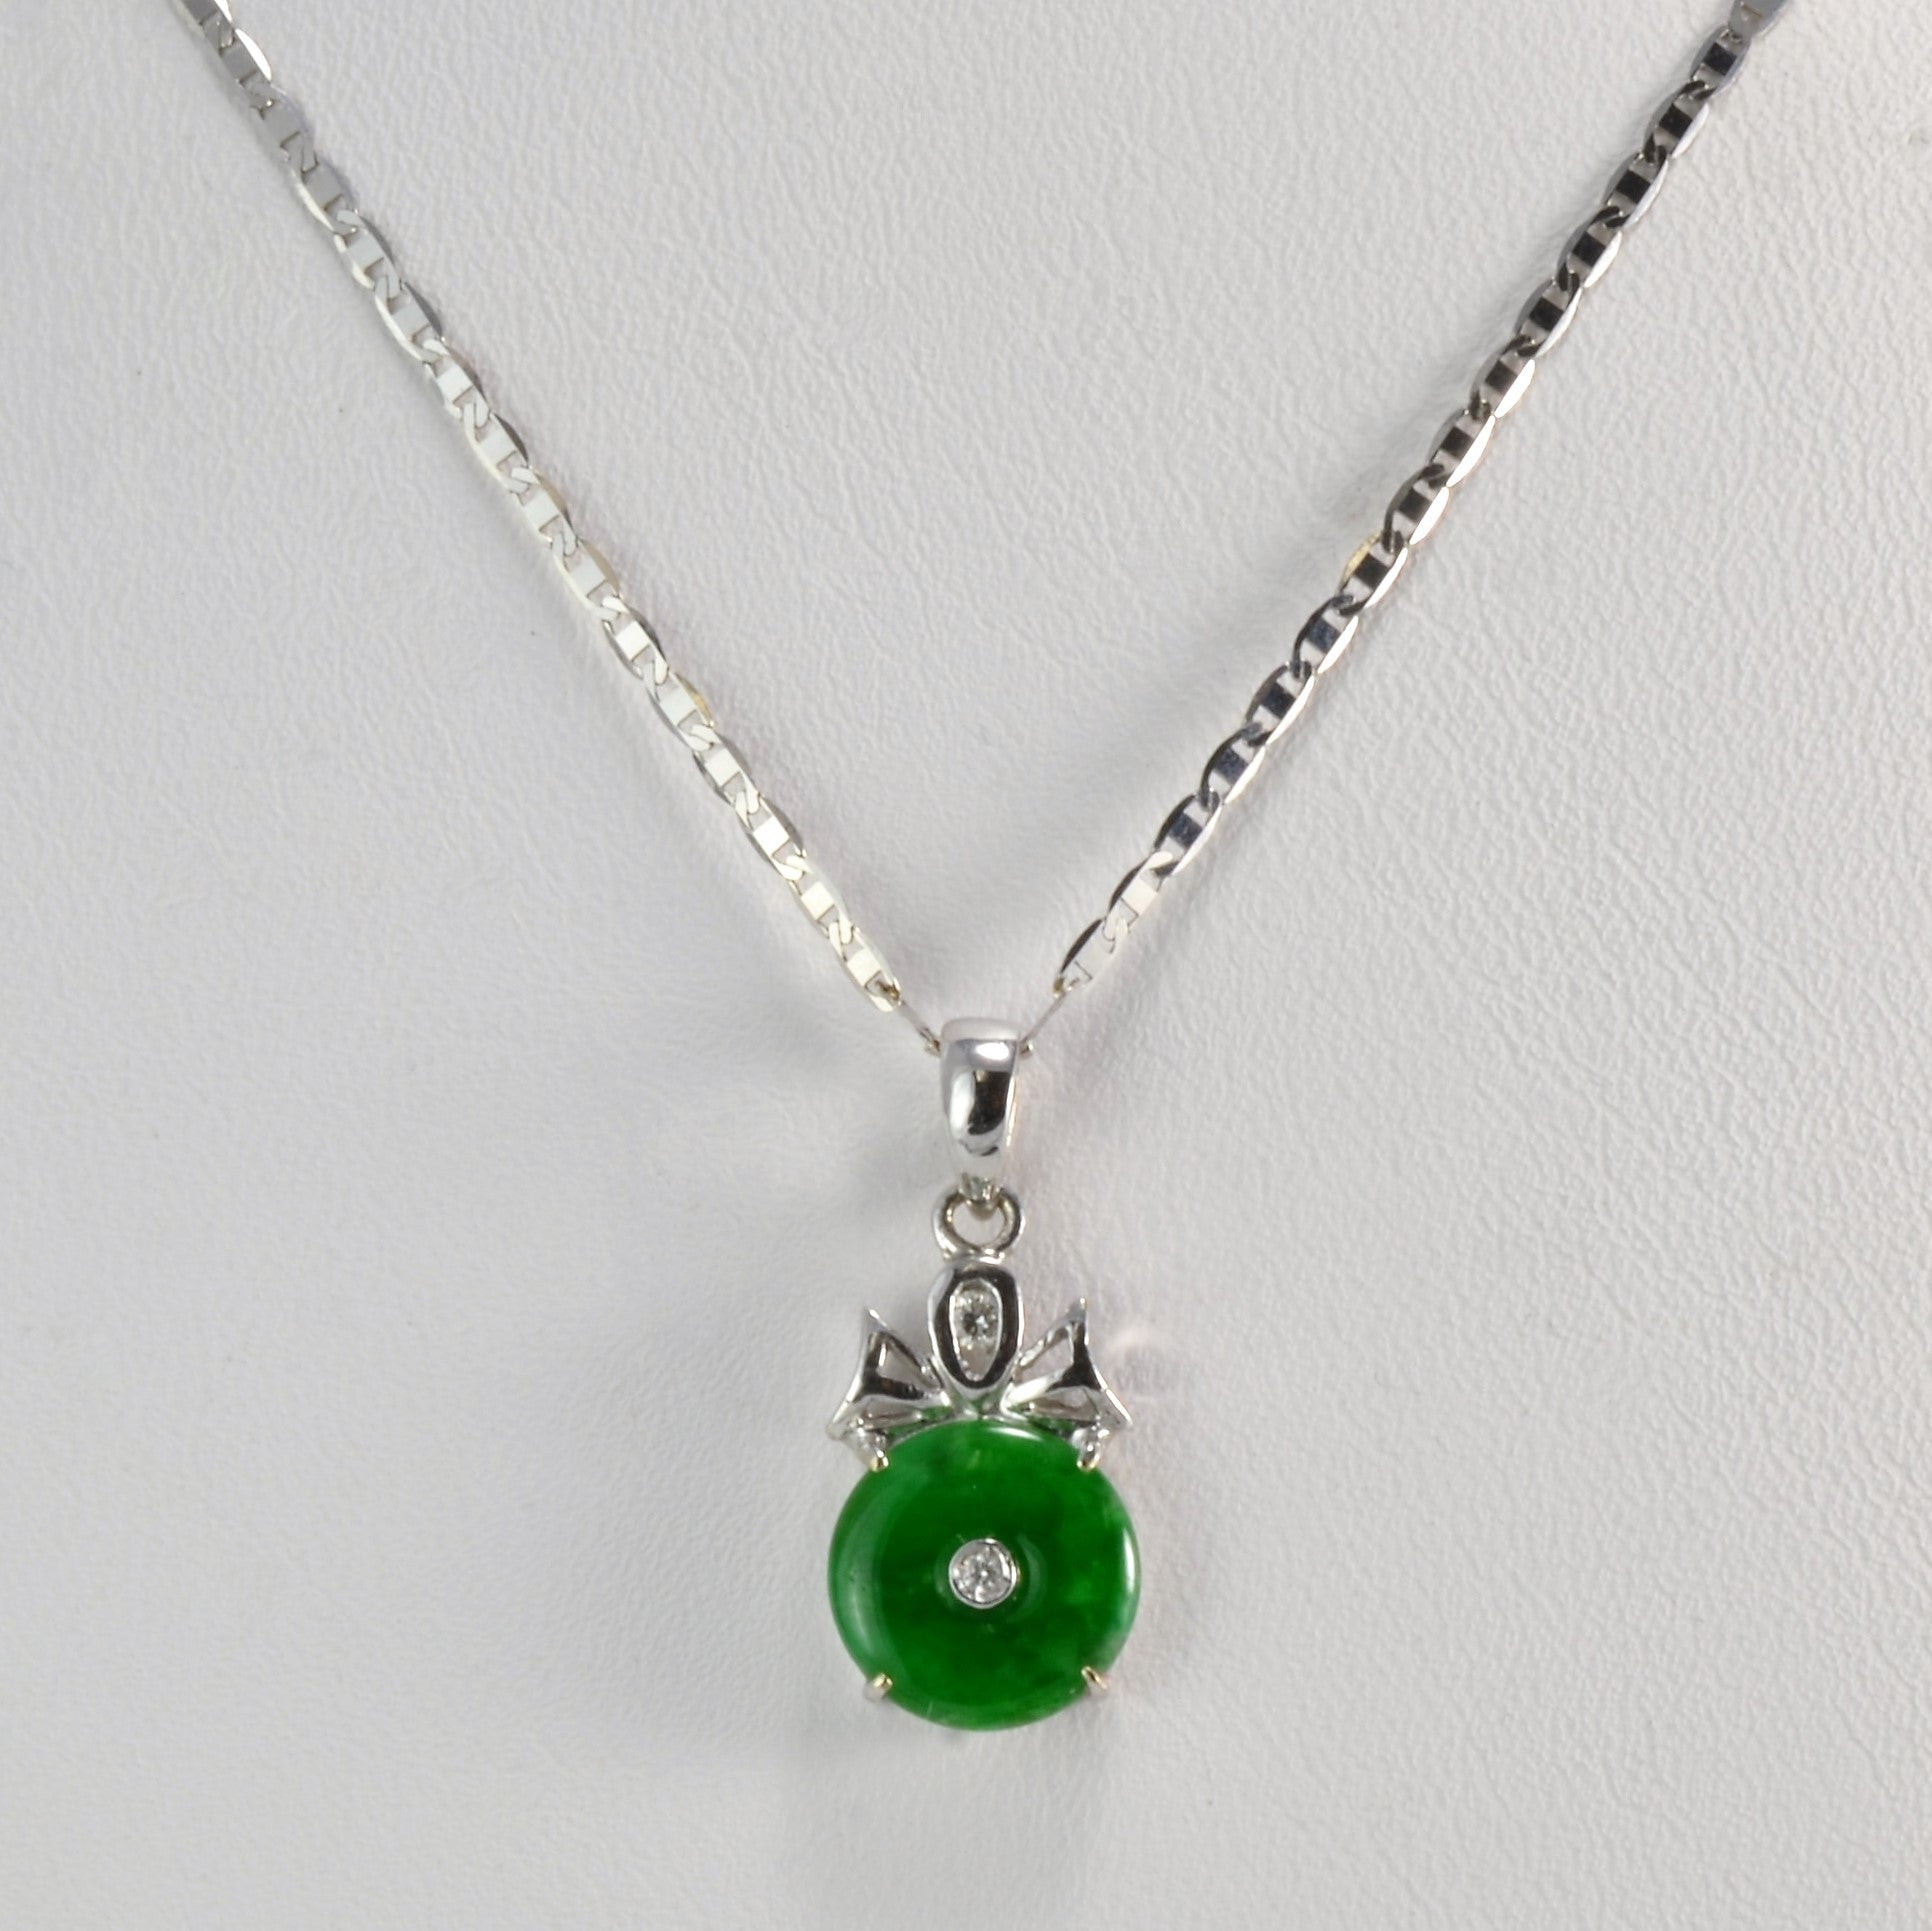 waist the jade product lin necklace qi pendant store